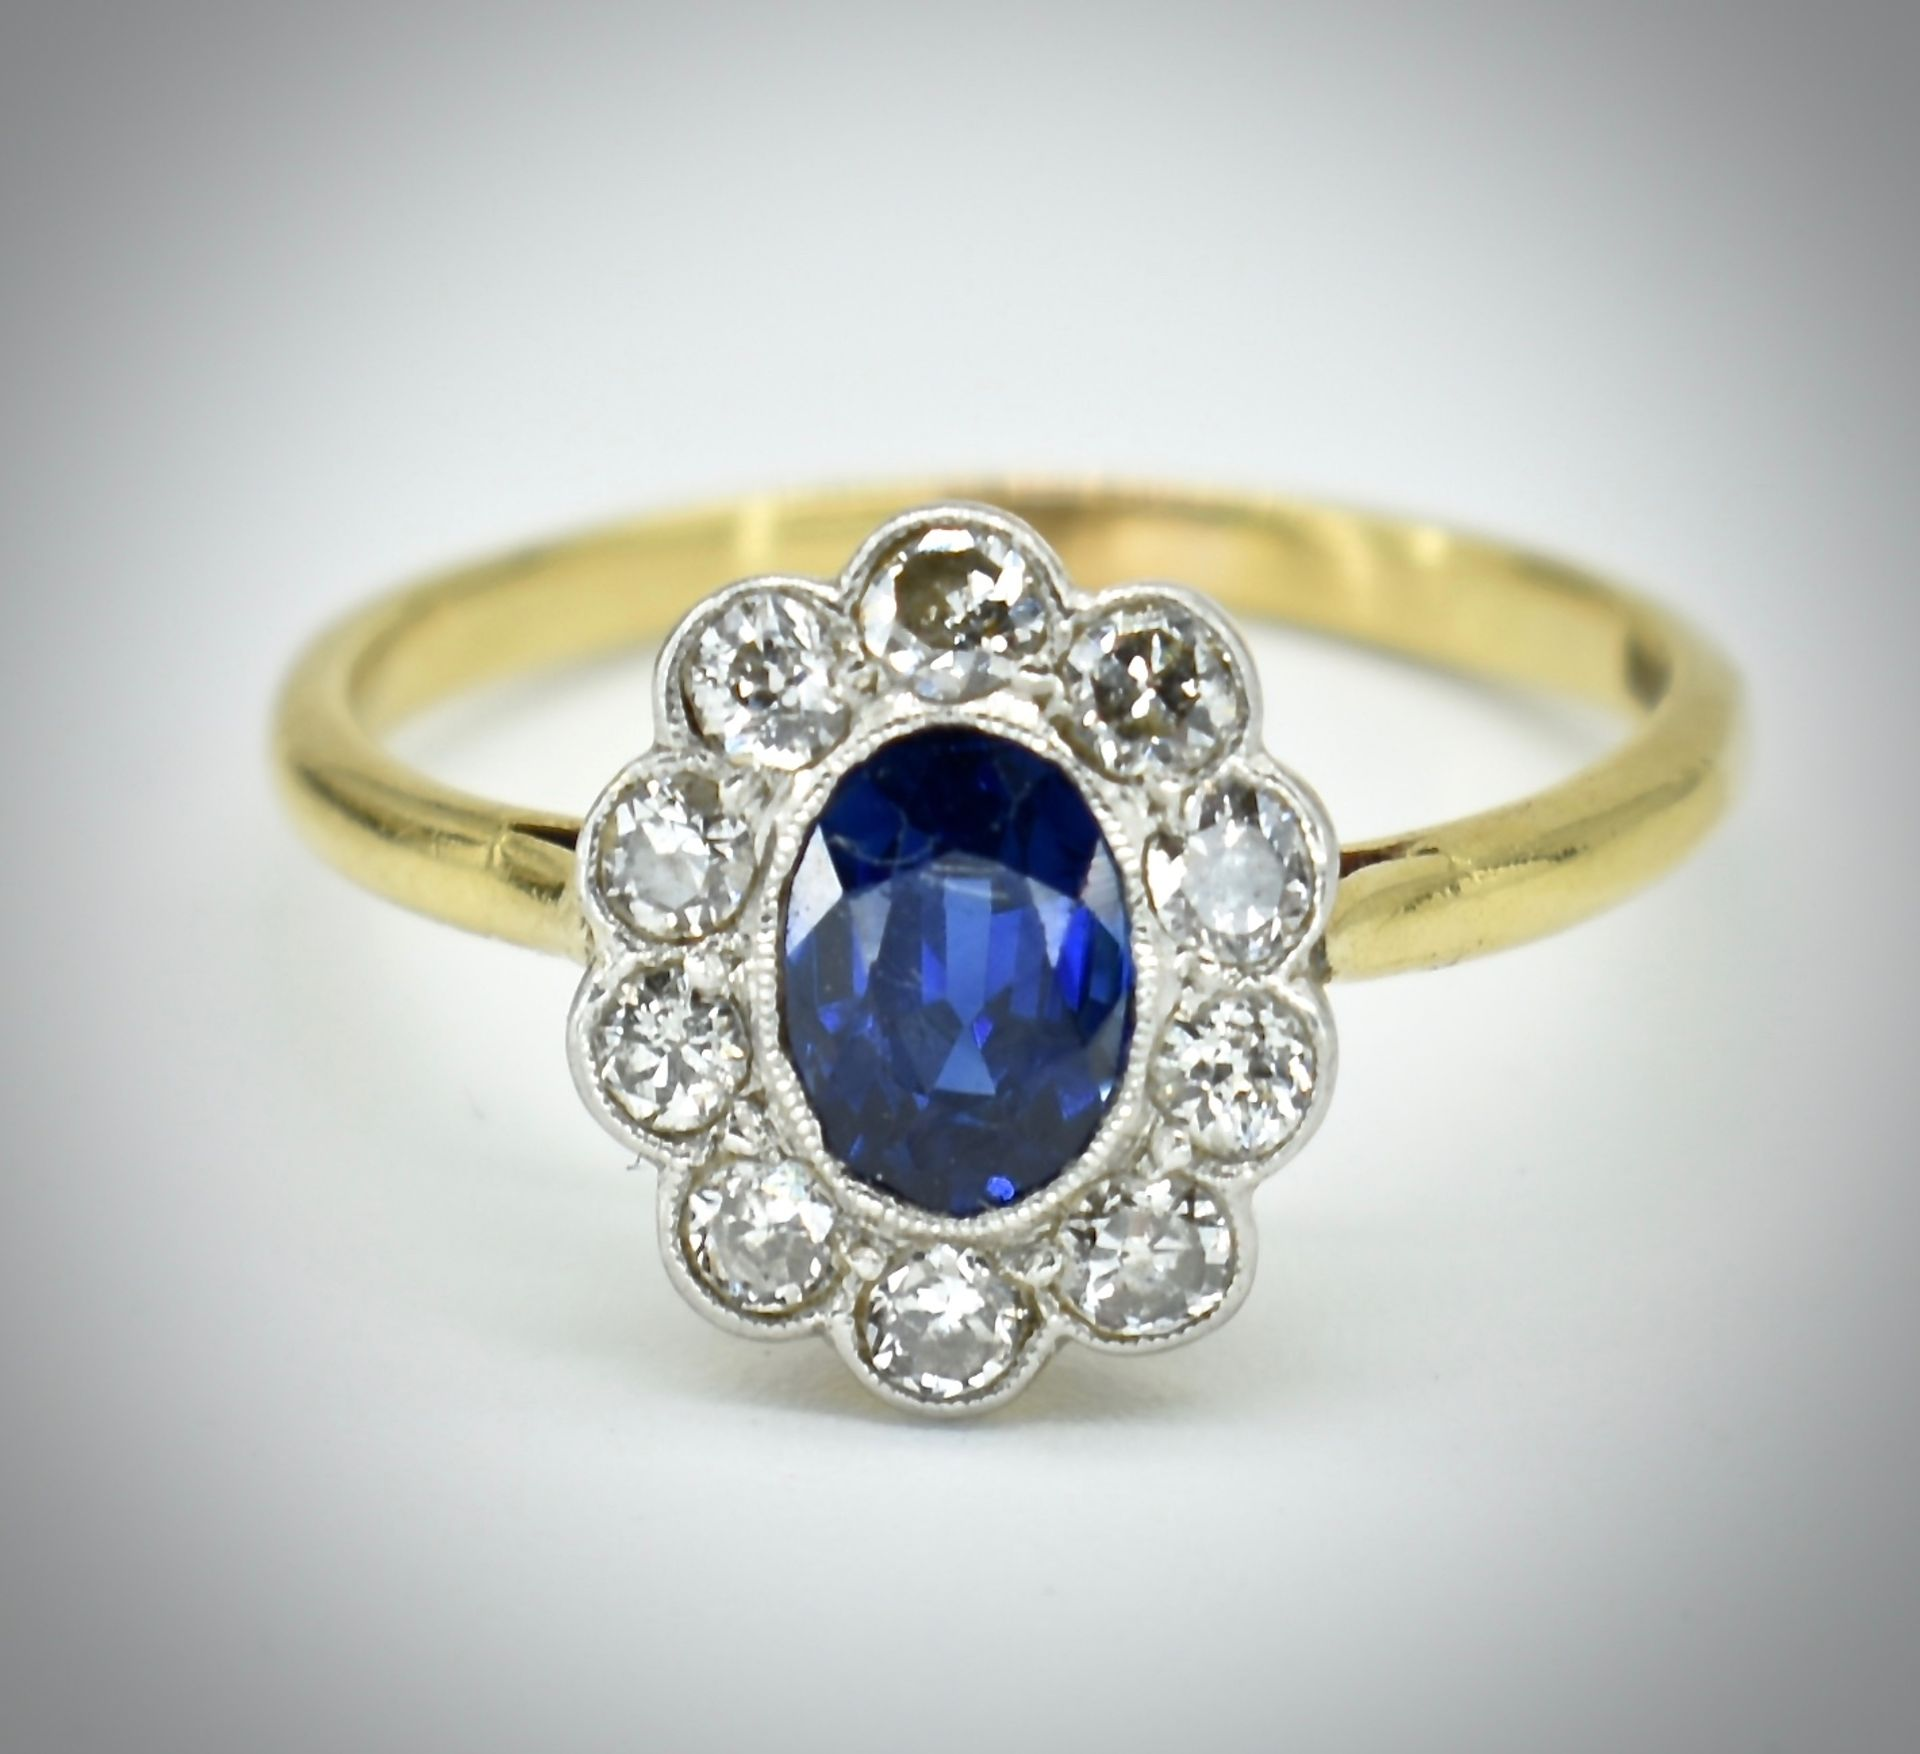 18ct Gold Sapphire & Diamond Cluster Ring - Image 3 of 6